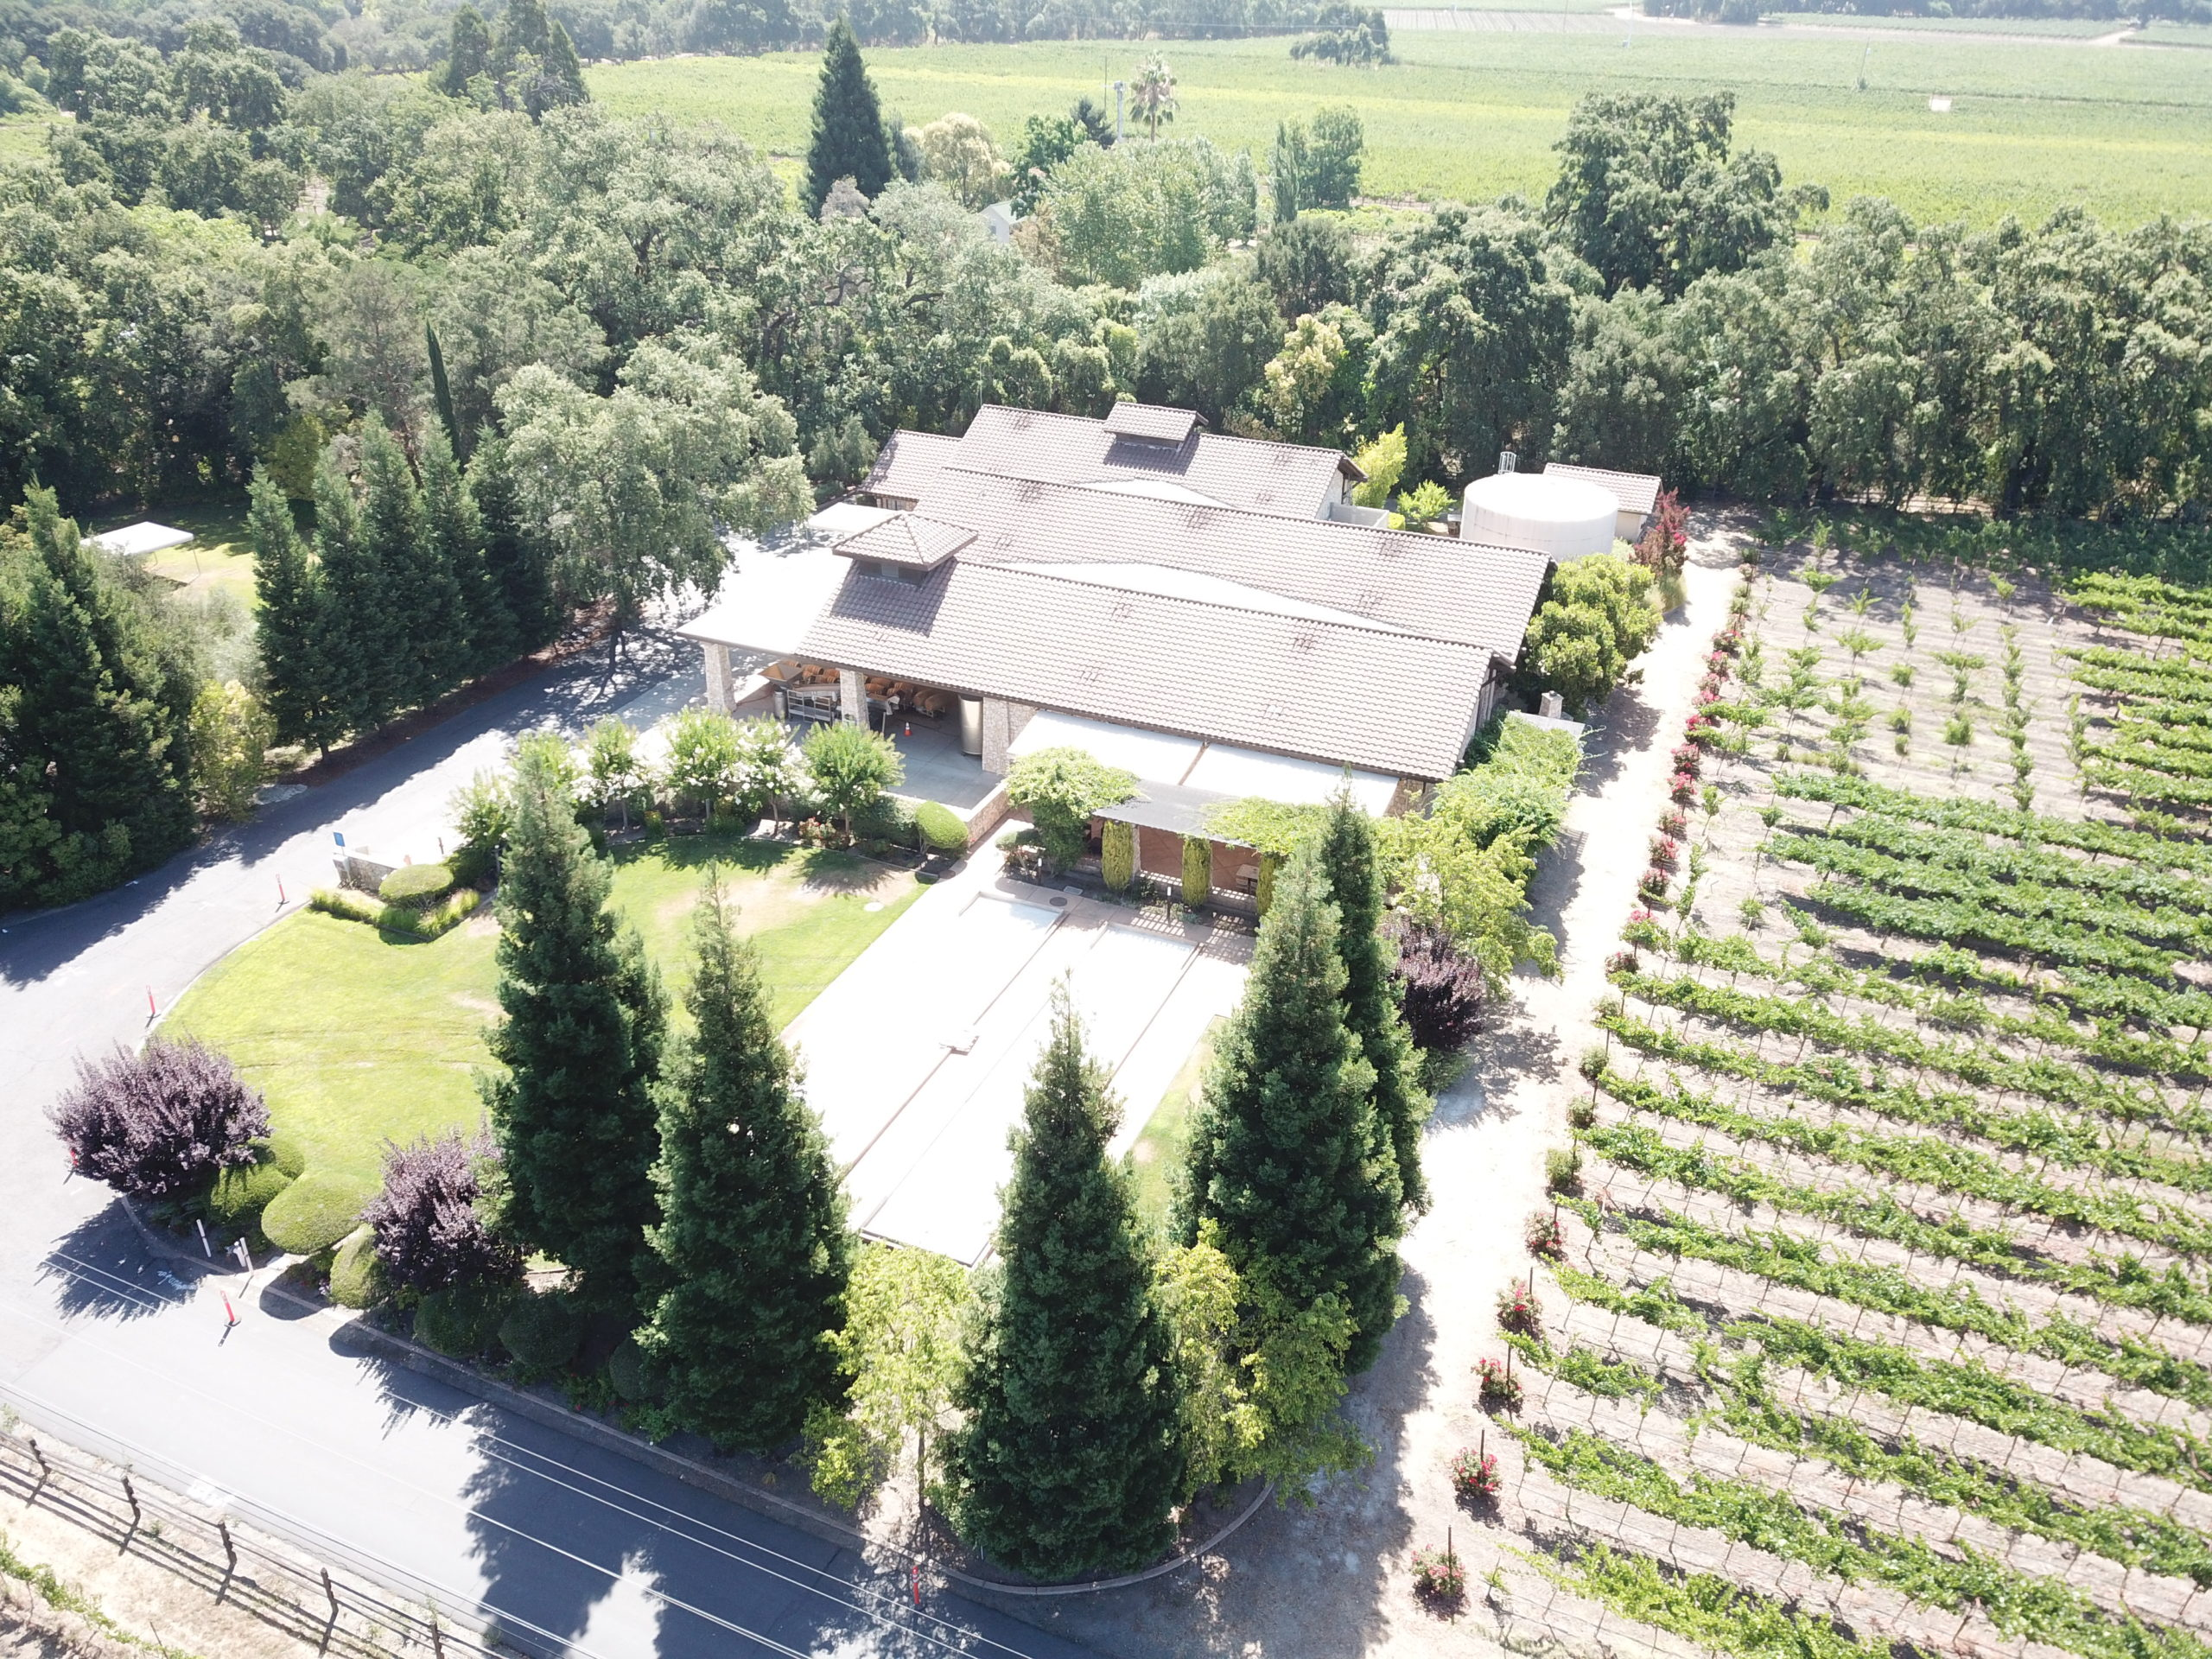 Bell Wine Cellars Remodel Renovation Commercial Construction Companies Near Me General Contractor Napa Winery Vineyard Aerial View